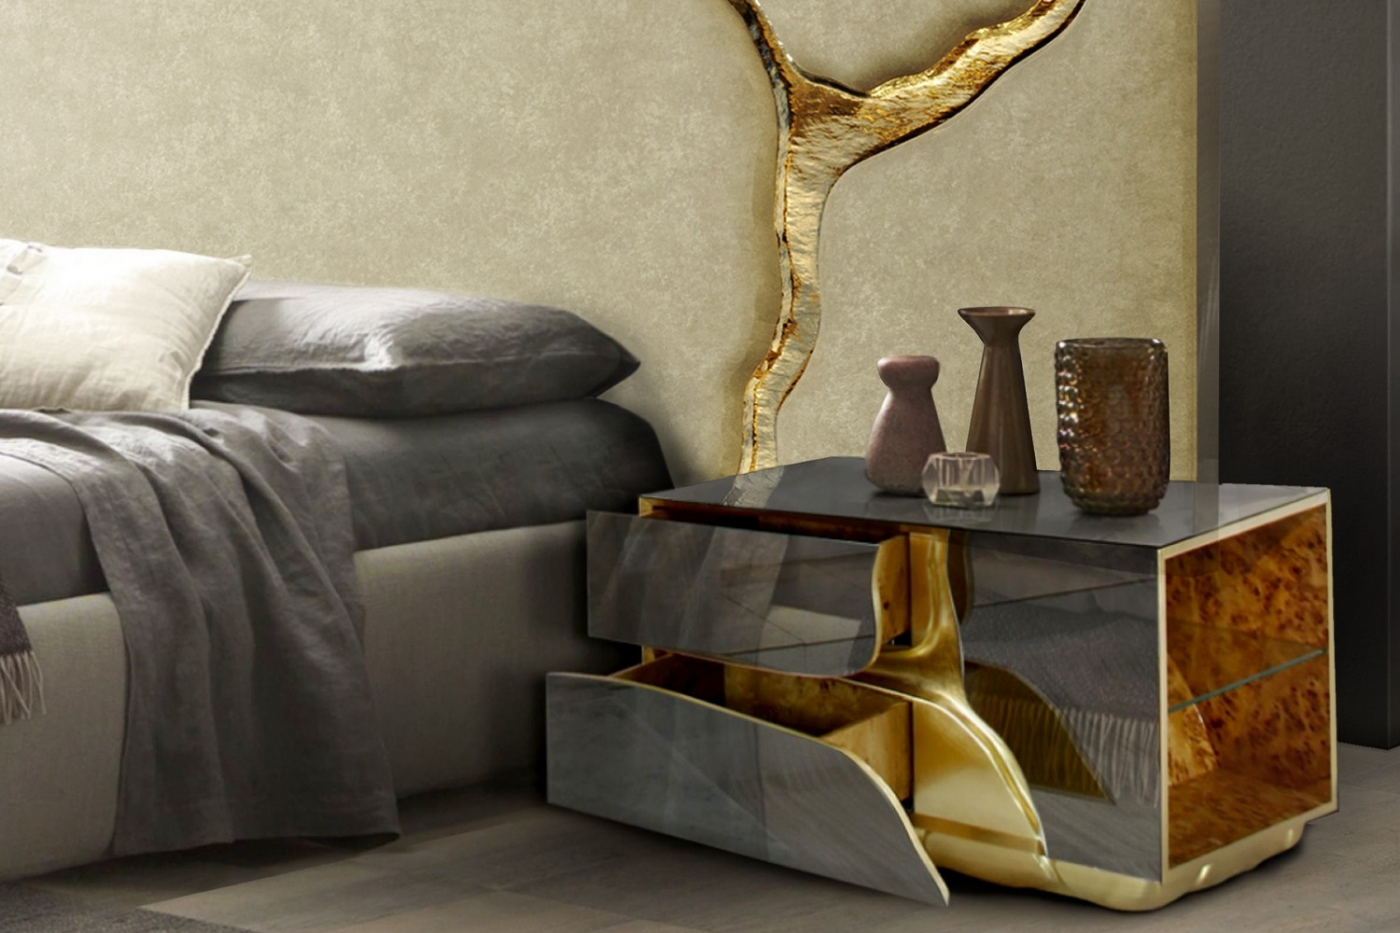 Bedroom Design Inspirations For The Space Of Your Dreams ft